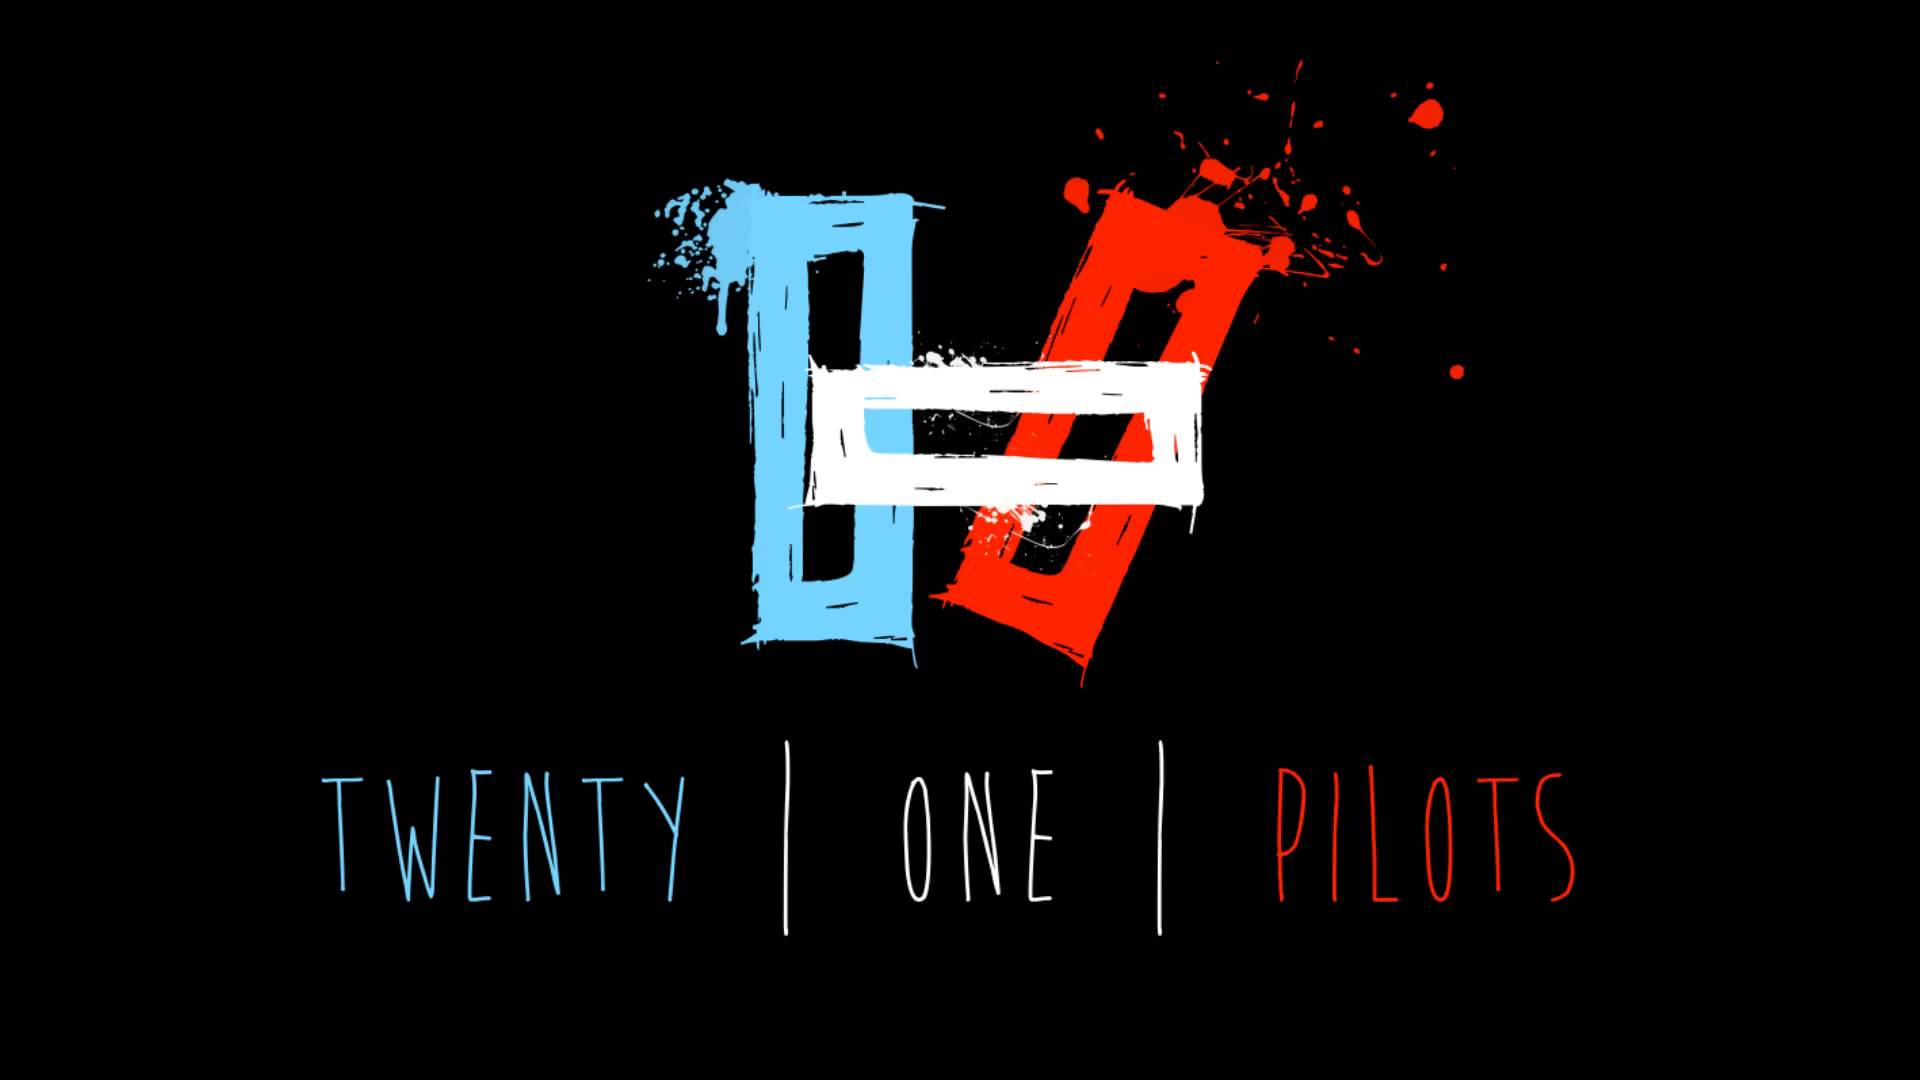 98 21 Pilots Wallpapers On Wallpapersafari Images, Photos, Reviews